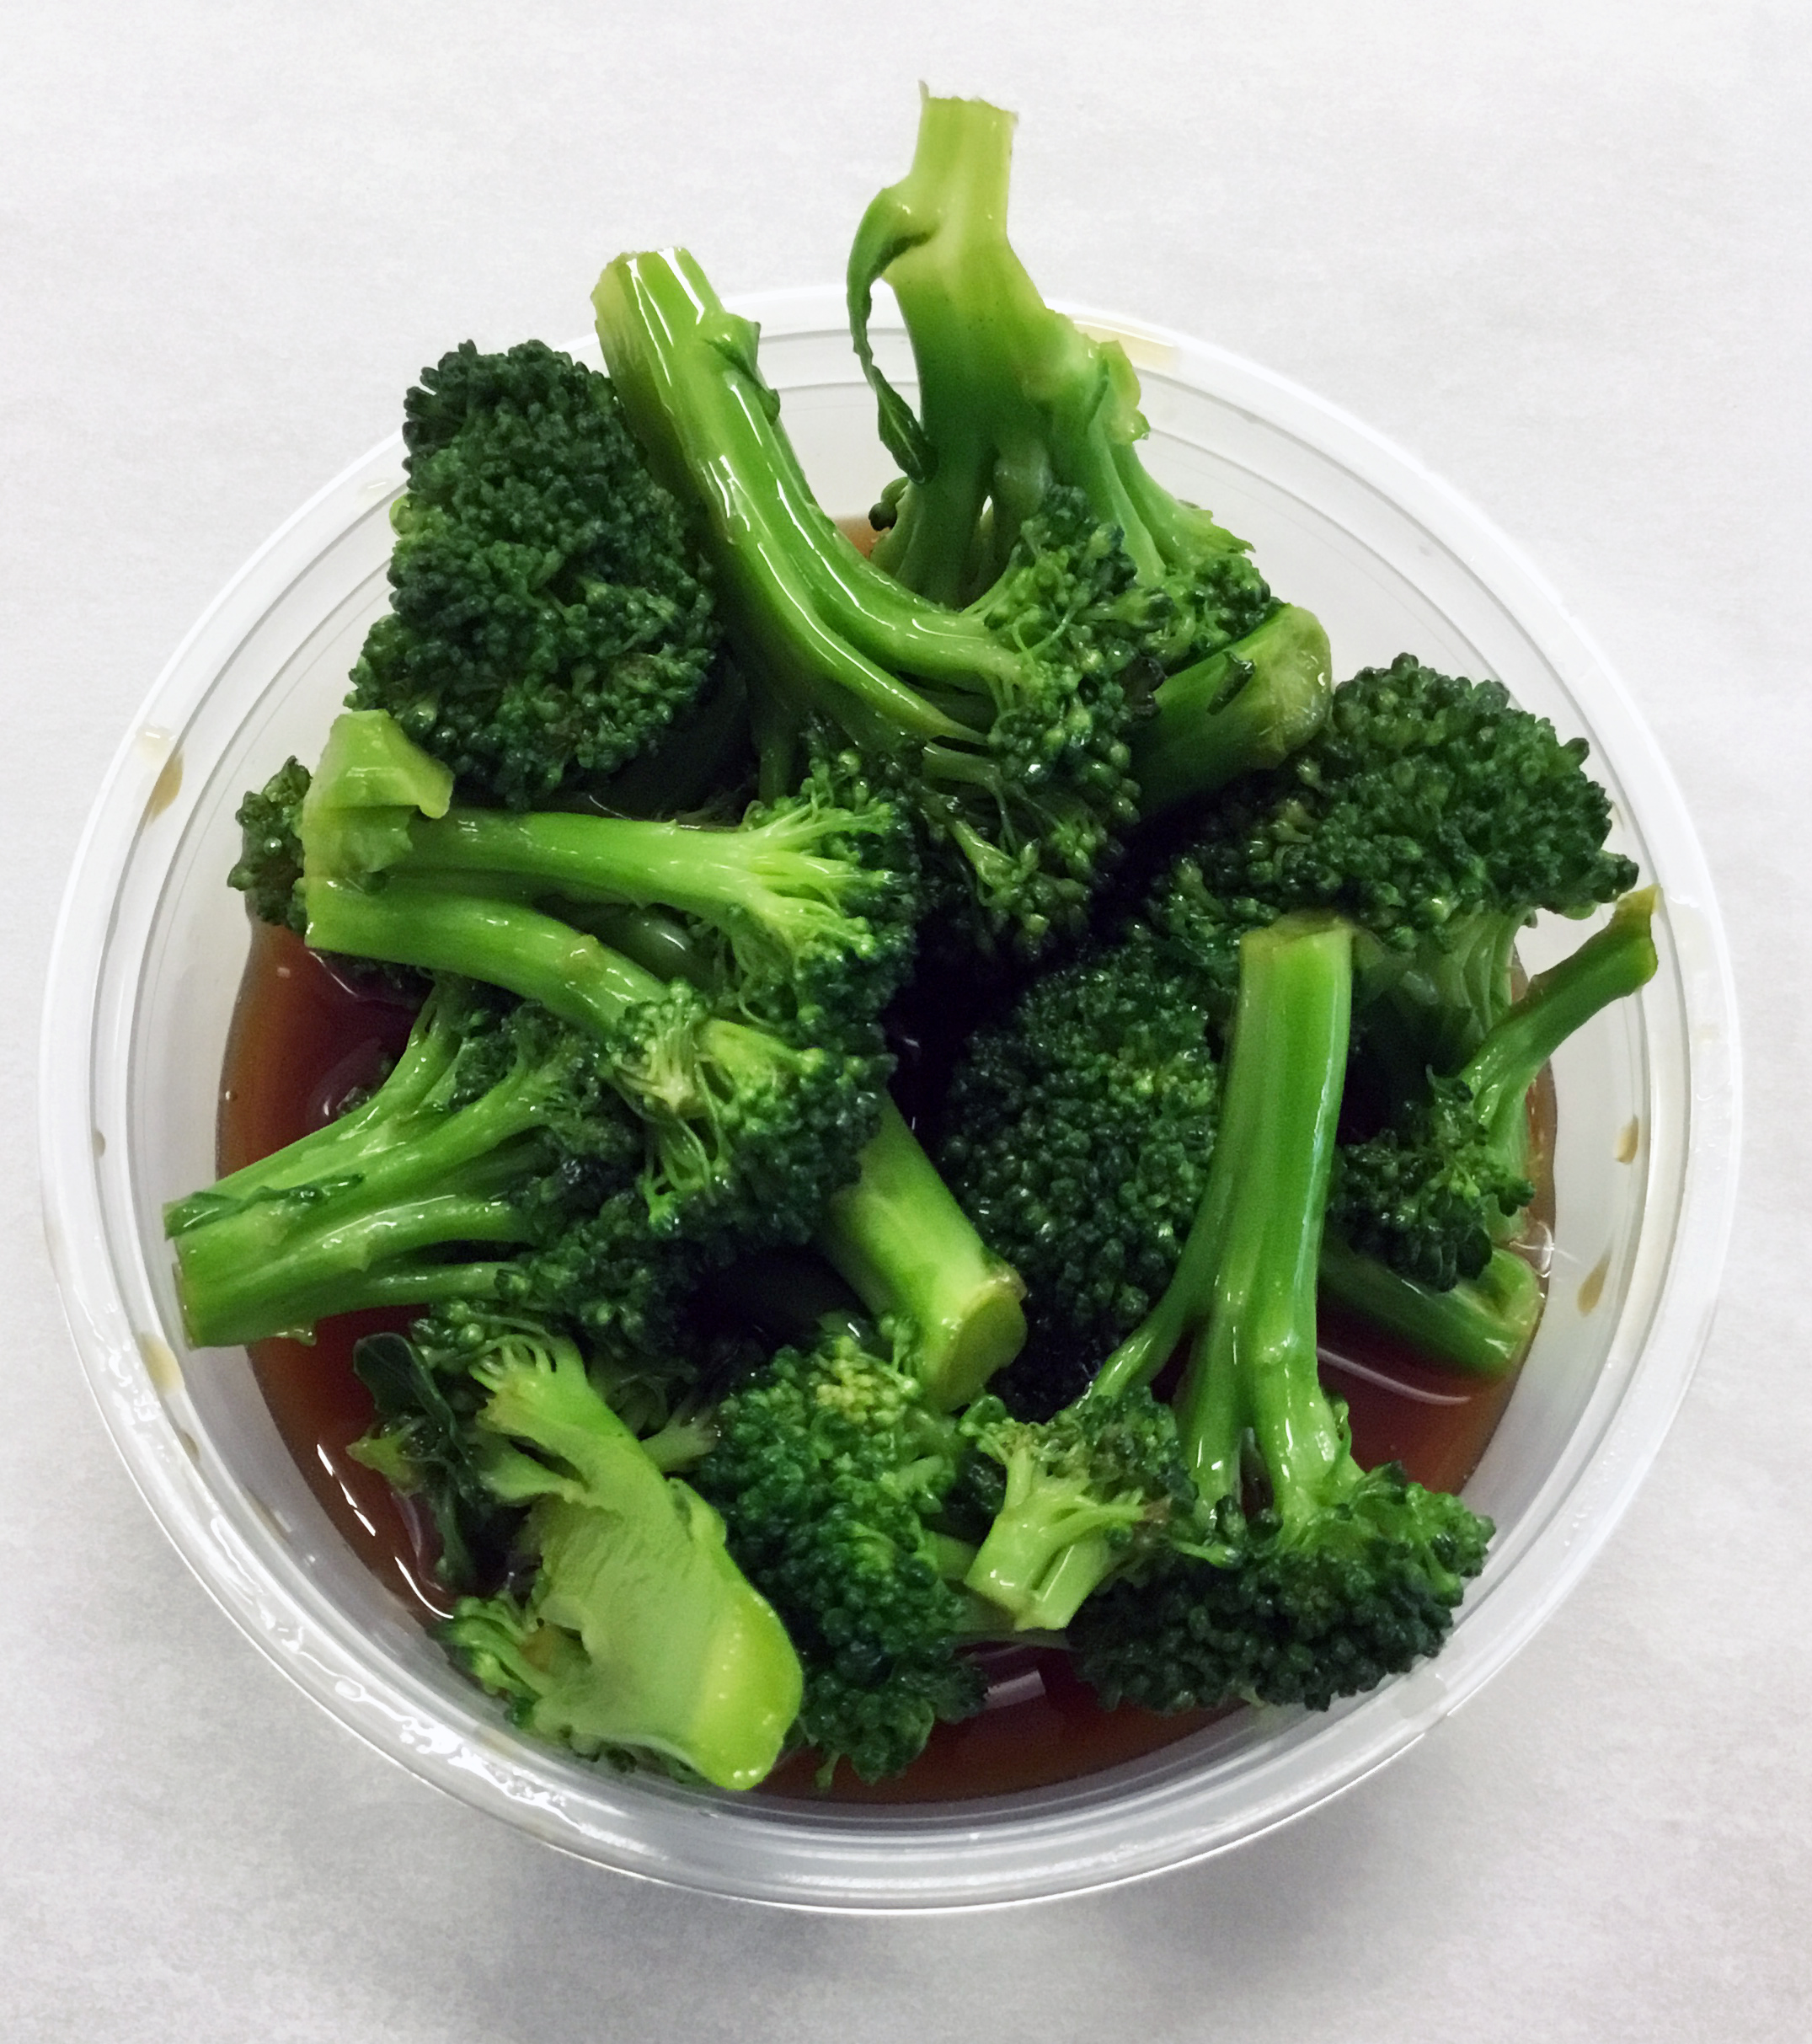 Broccoli boiled salad with a teriyaki sauce of tamari and brown rice syrup.